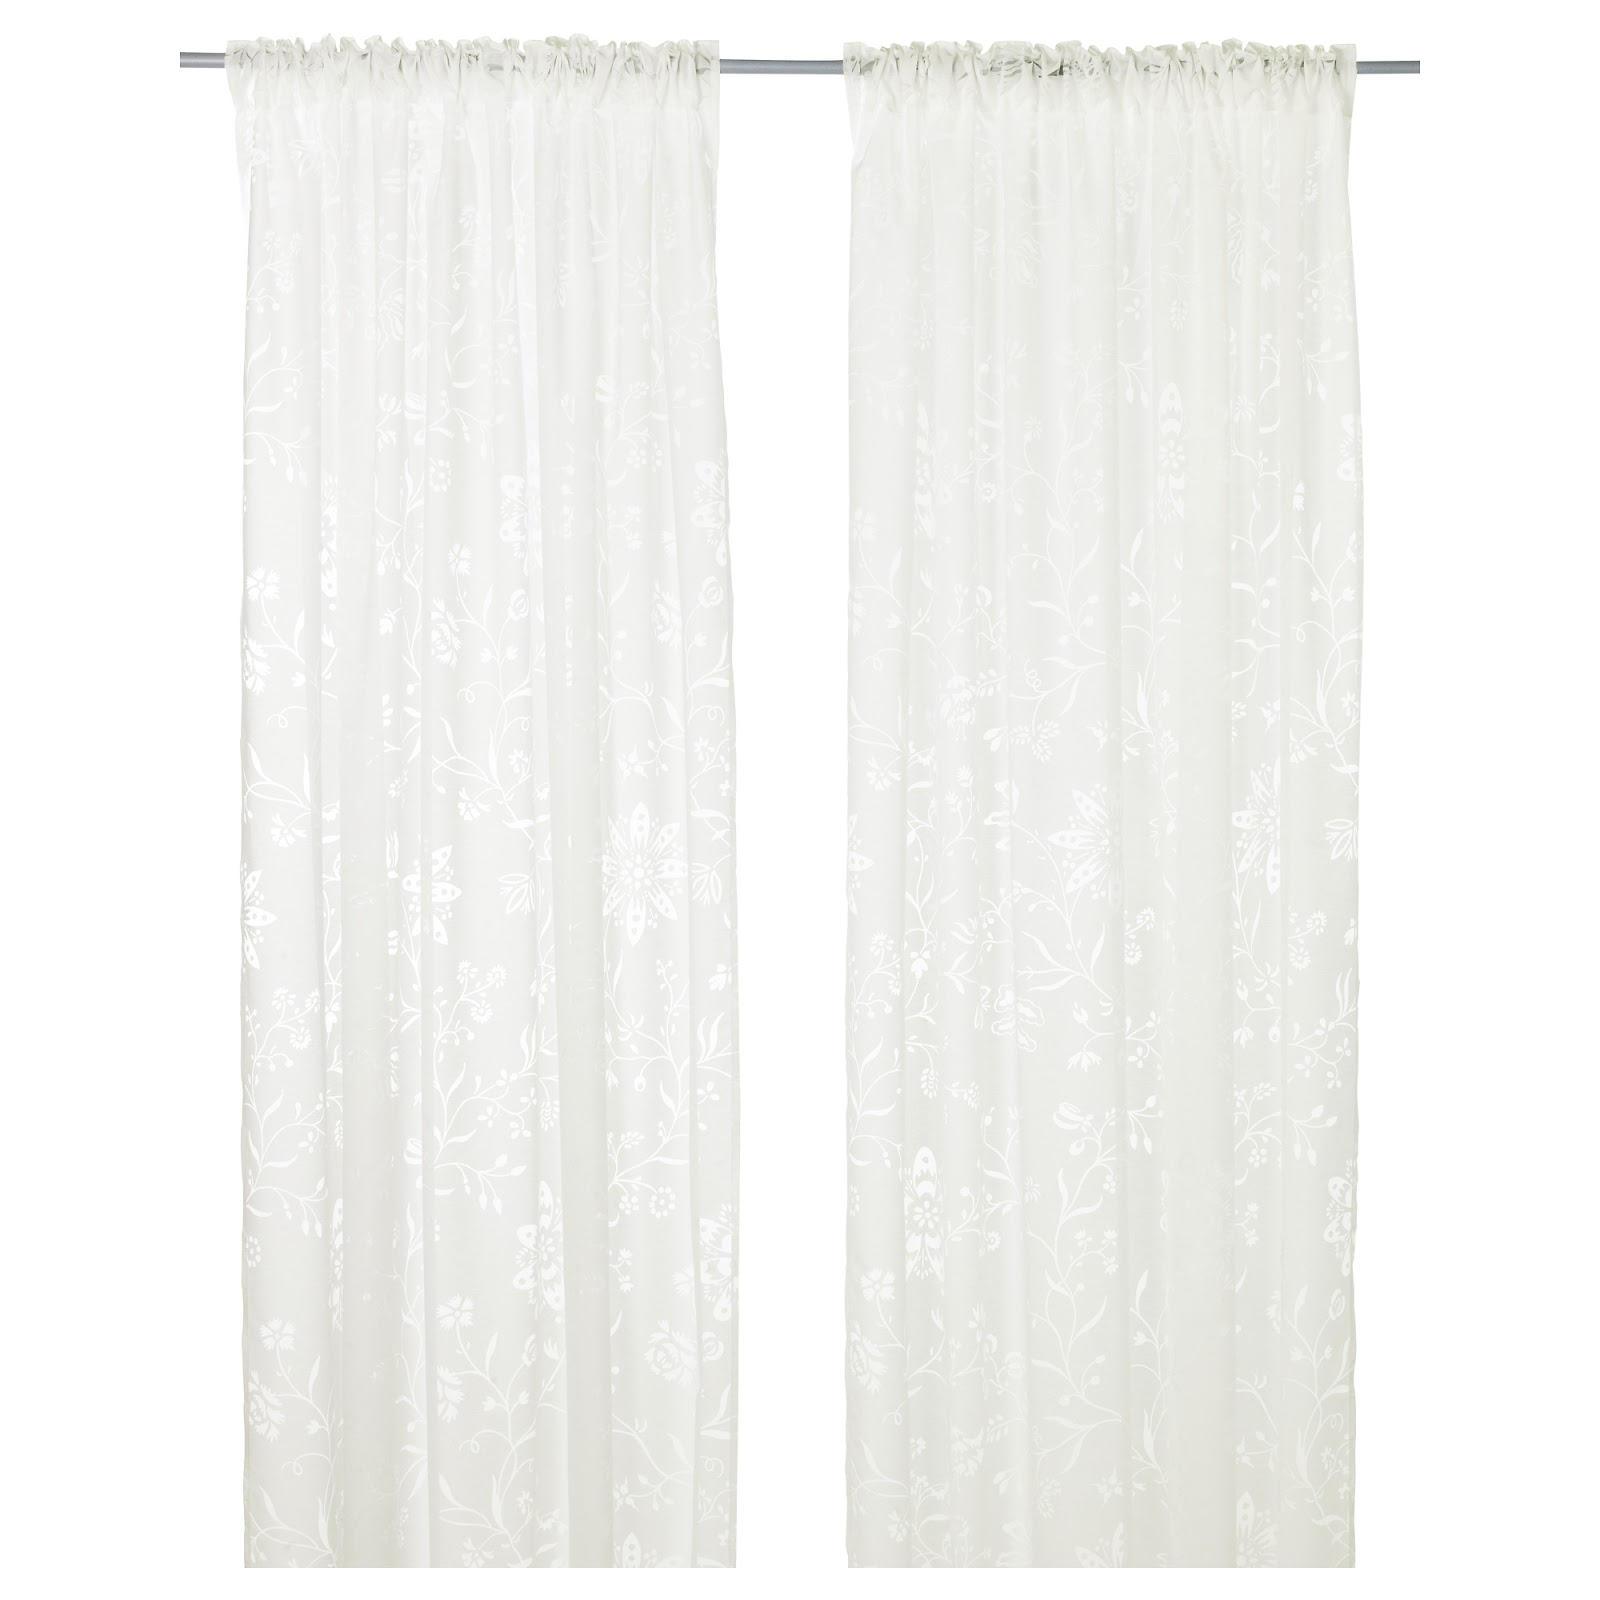 Plastic People Curtain Road Refrigerator Curtains Room Divider Sheet Shower Rings